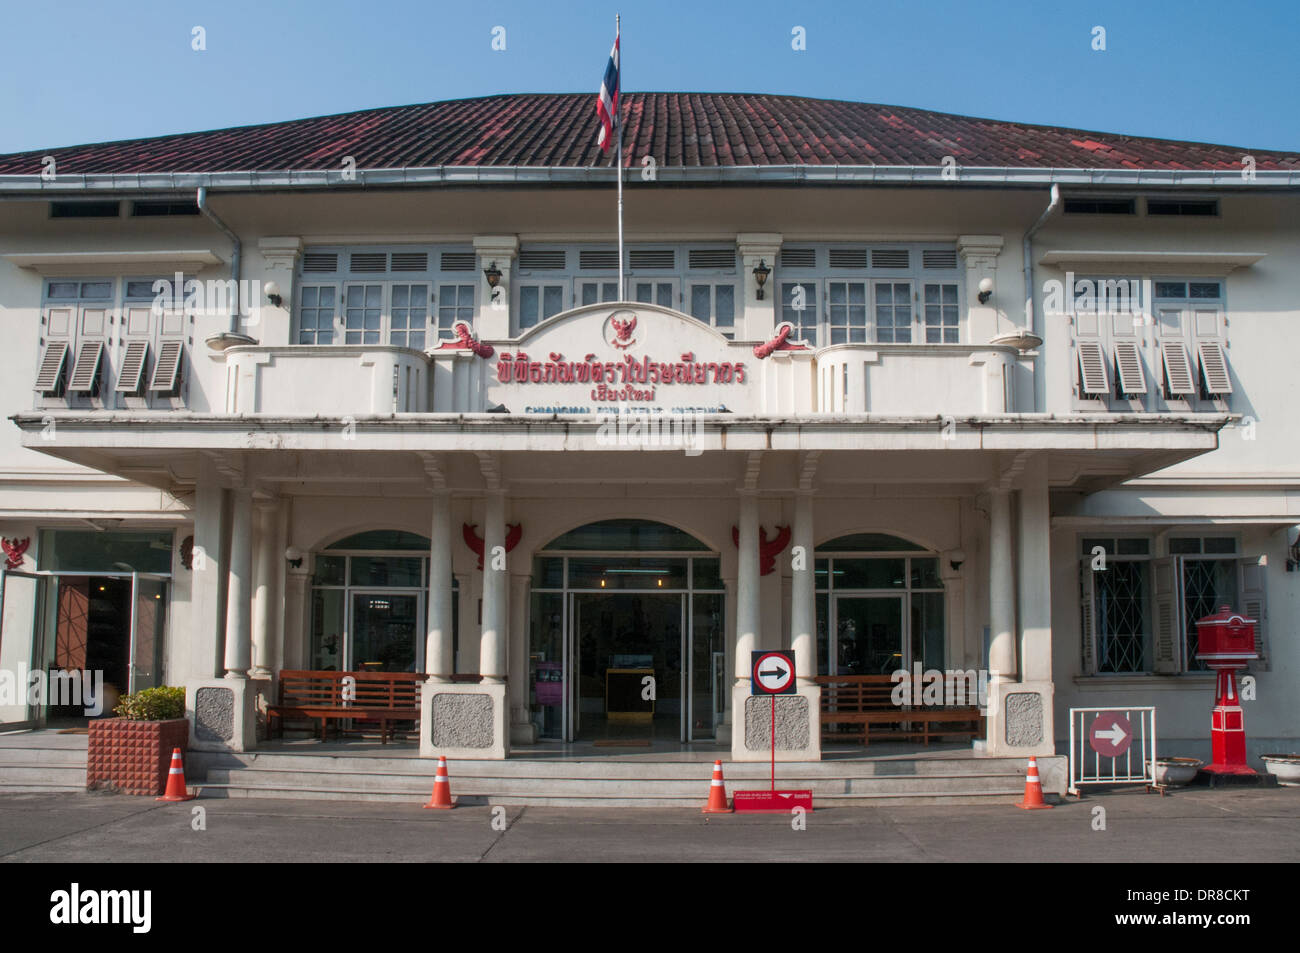 Philatelic Museum, a 1920s post office building in Chiang Mai, Thailand - Stock Image